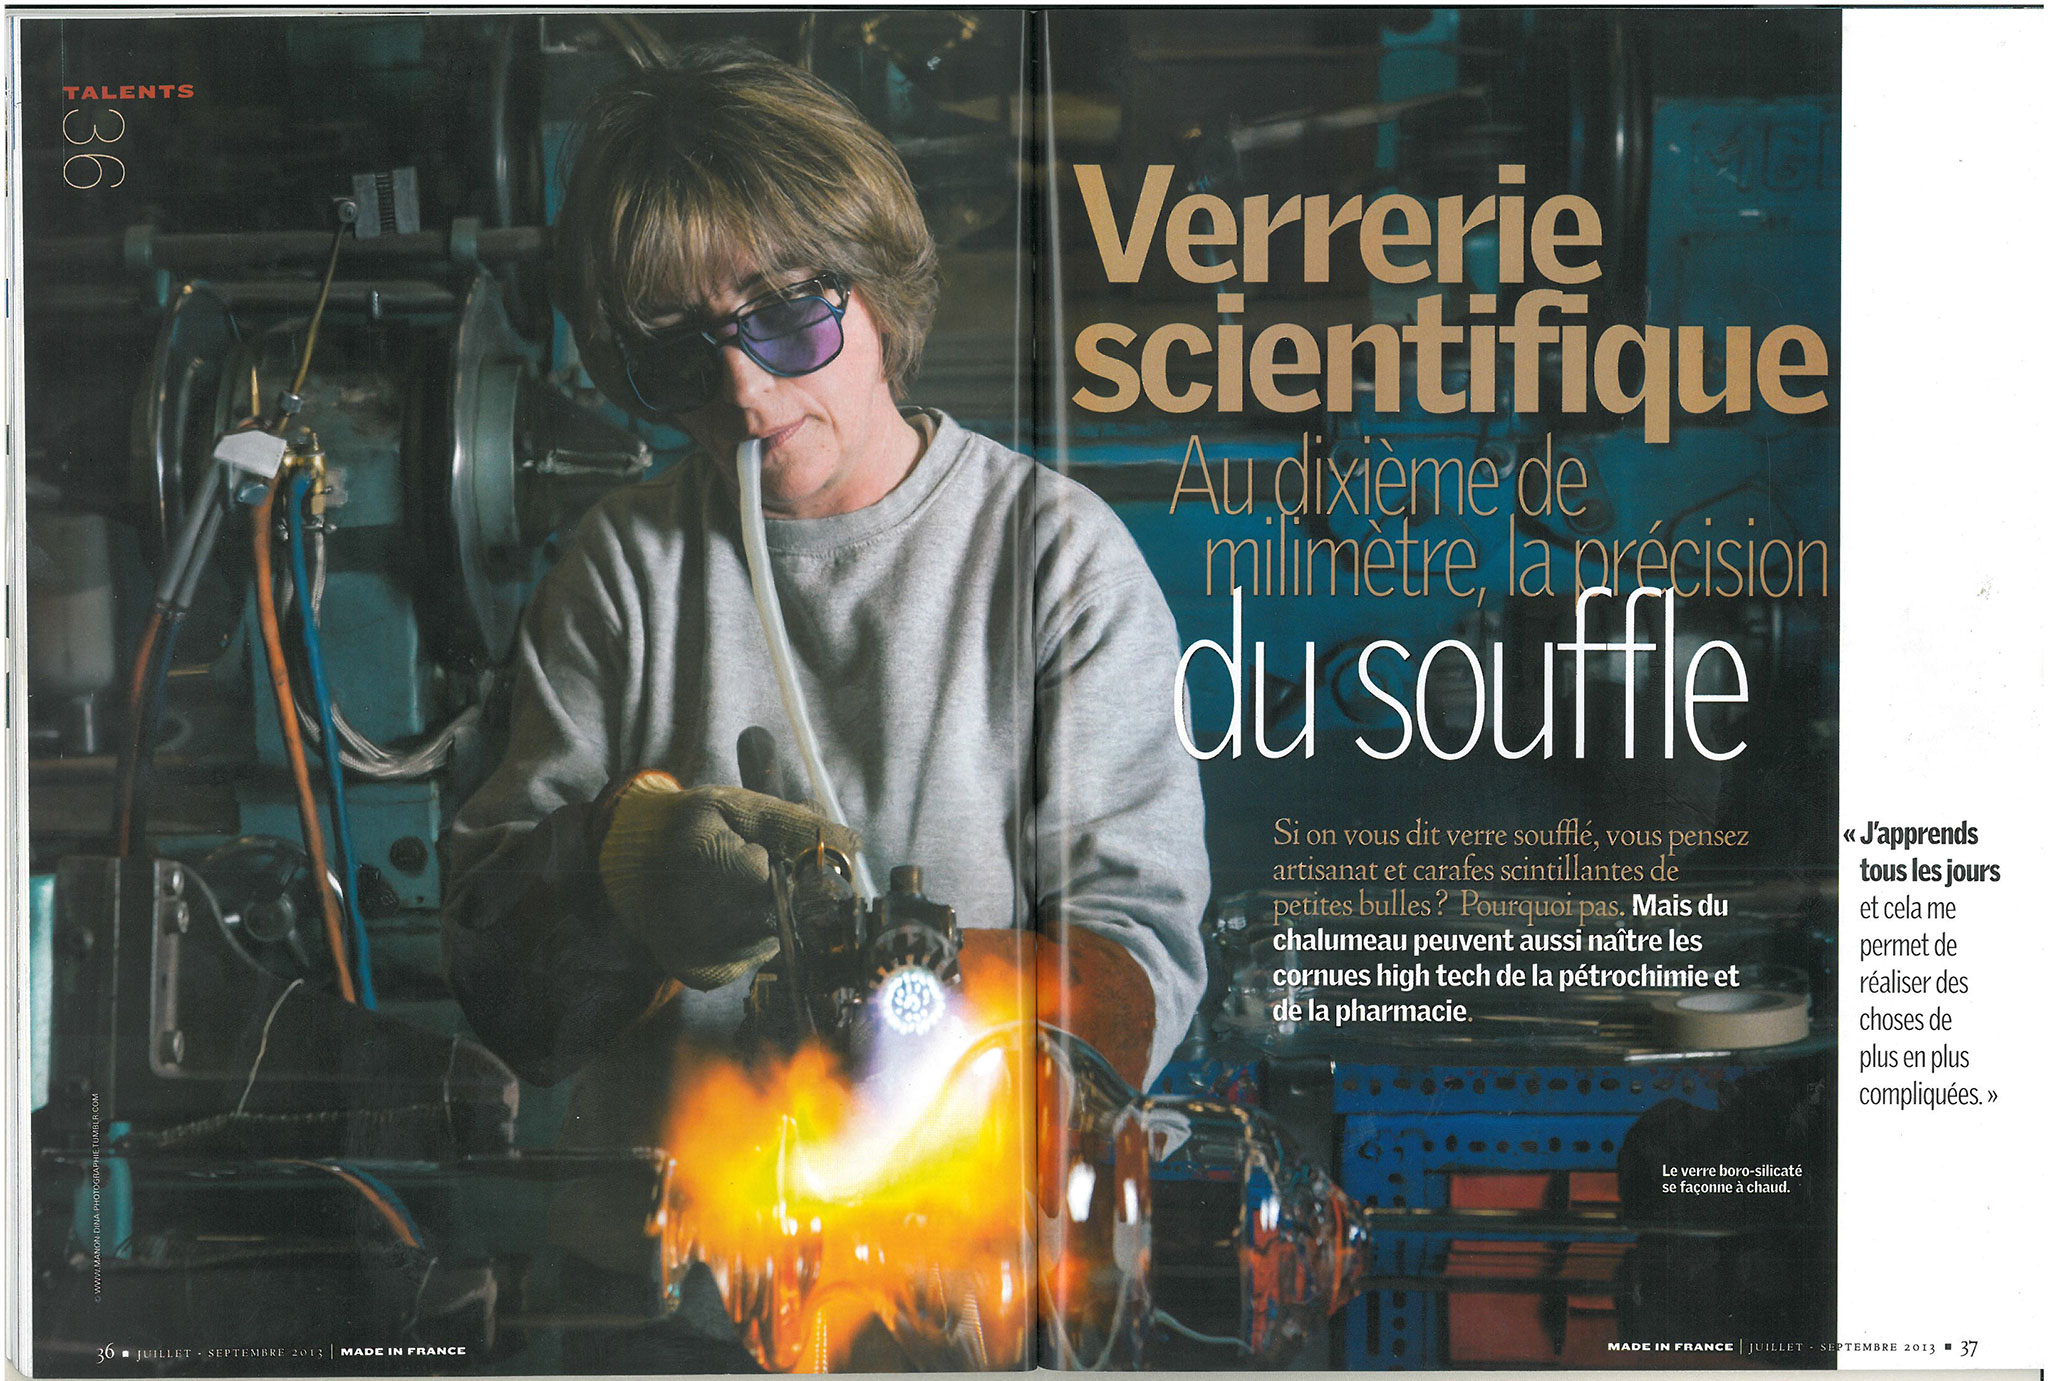 verrerie, scientifique, science, verrerie, souffleur de verre, verre, souffleur, precision, femme, meilleur ouvrier de france, ouvrier, industrie, usine, Jonage, industrialisation, industrielle, lyon, agglomeration,grand lyon, reportage, photo, studio le carre, reportage photo, journalisme, couverture, magazine, made in france, beatrice garranas, parution